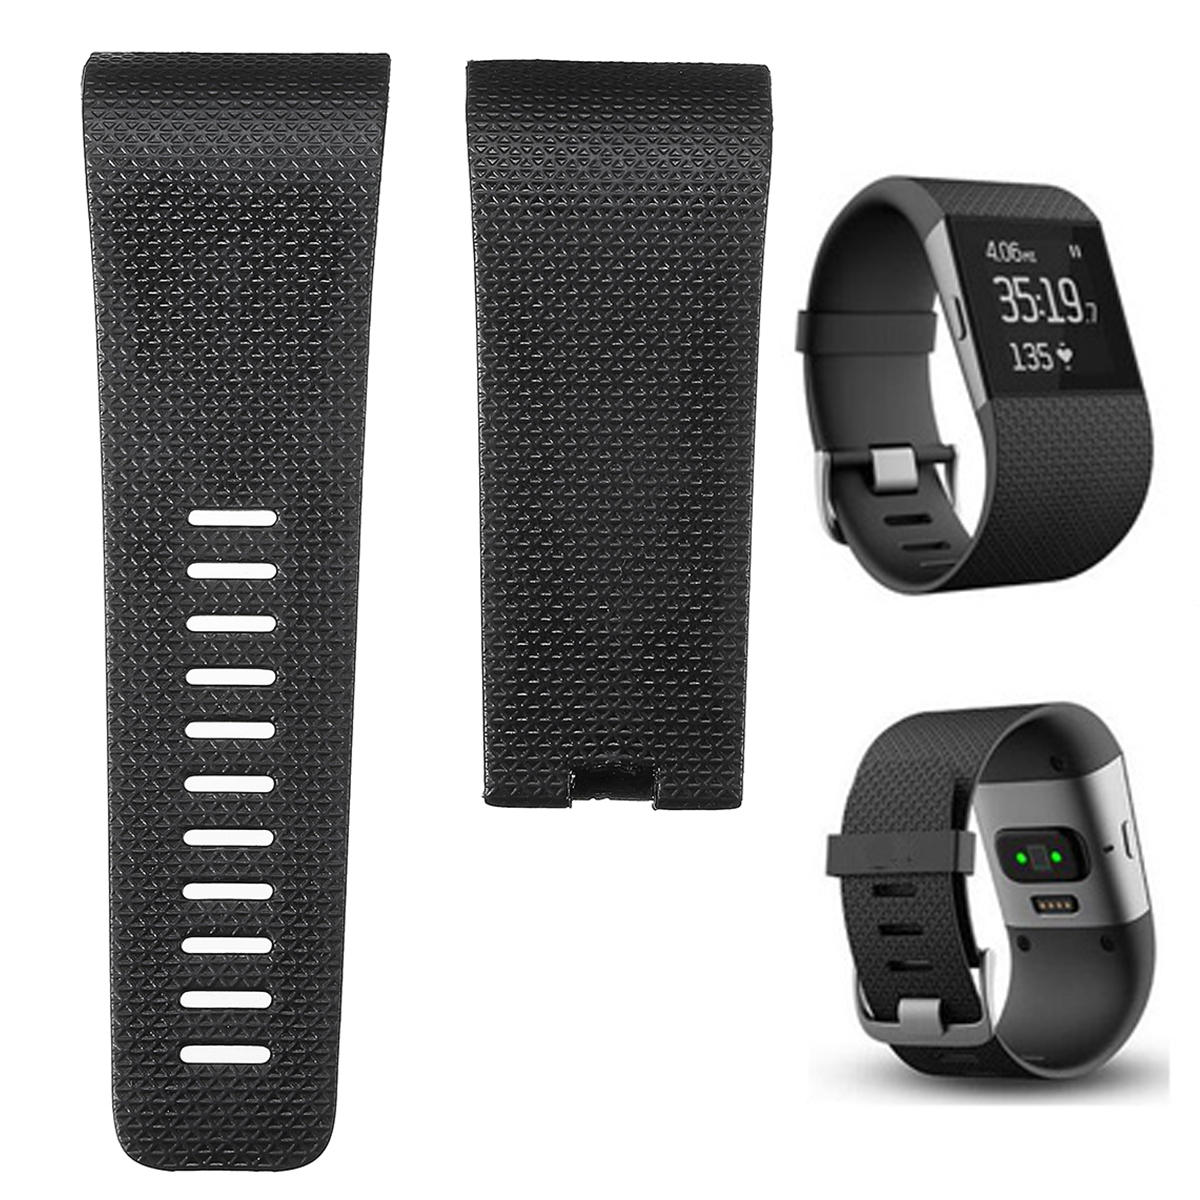 Large Replacement TPU Band Strap Wristband for Fitbit Surge Activity Tracker